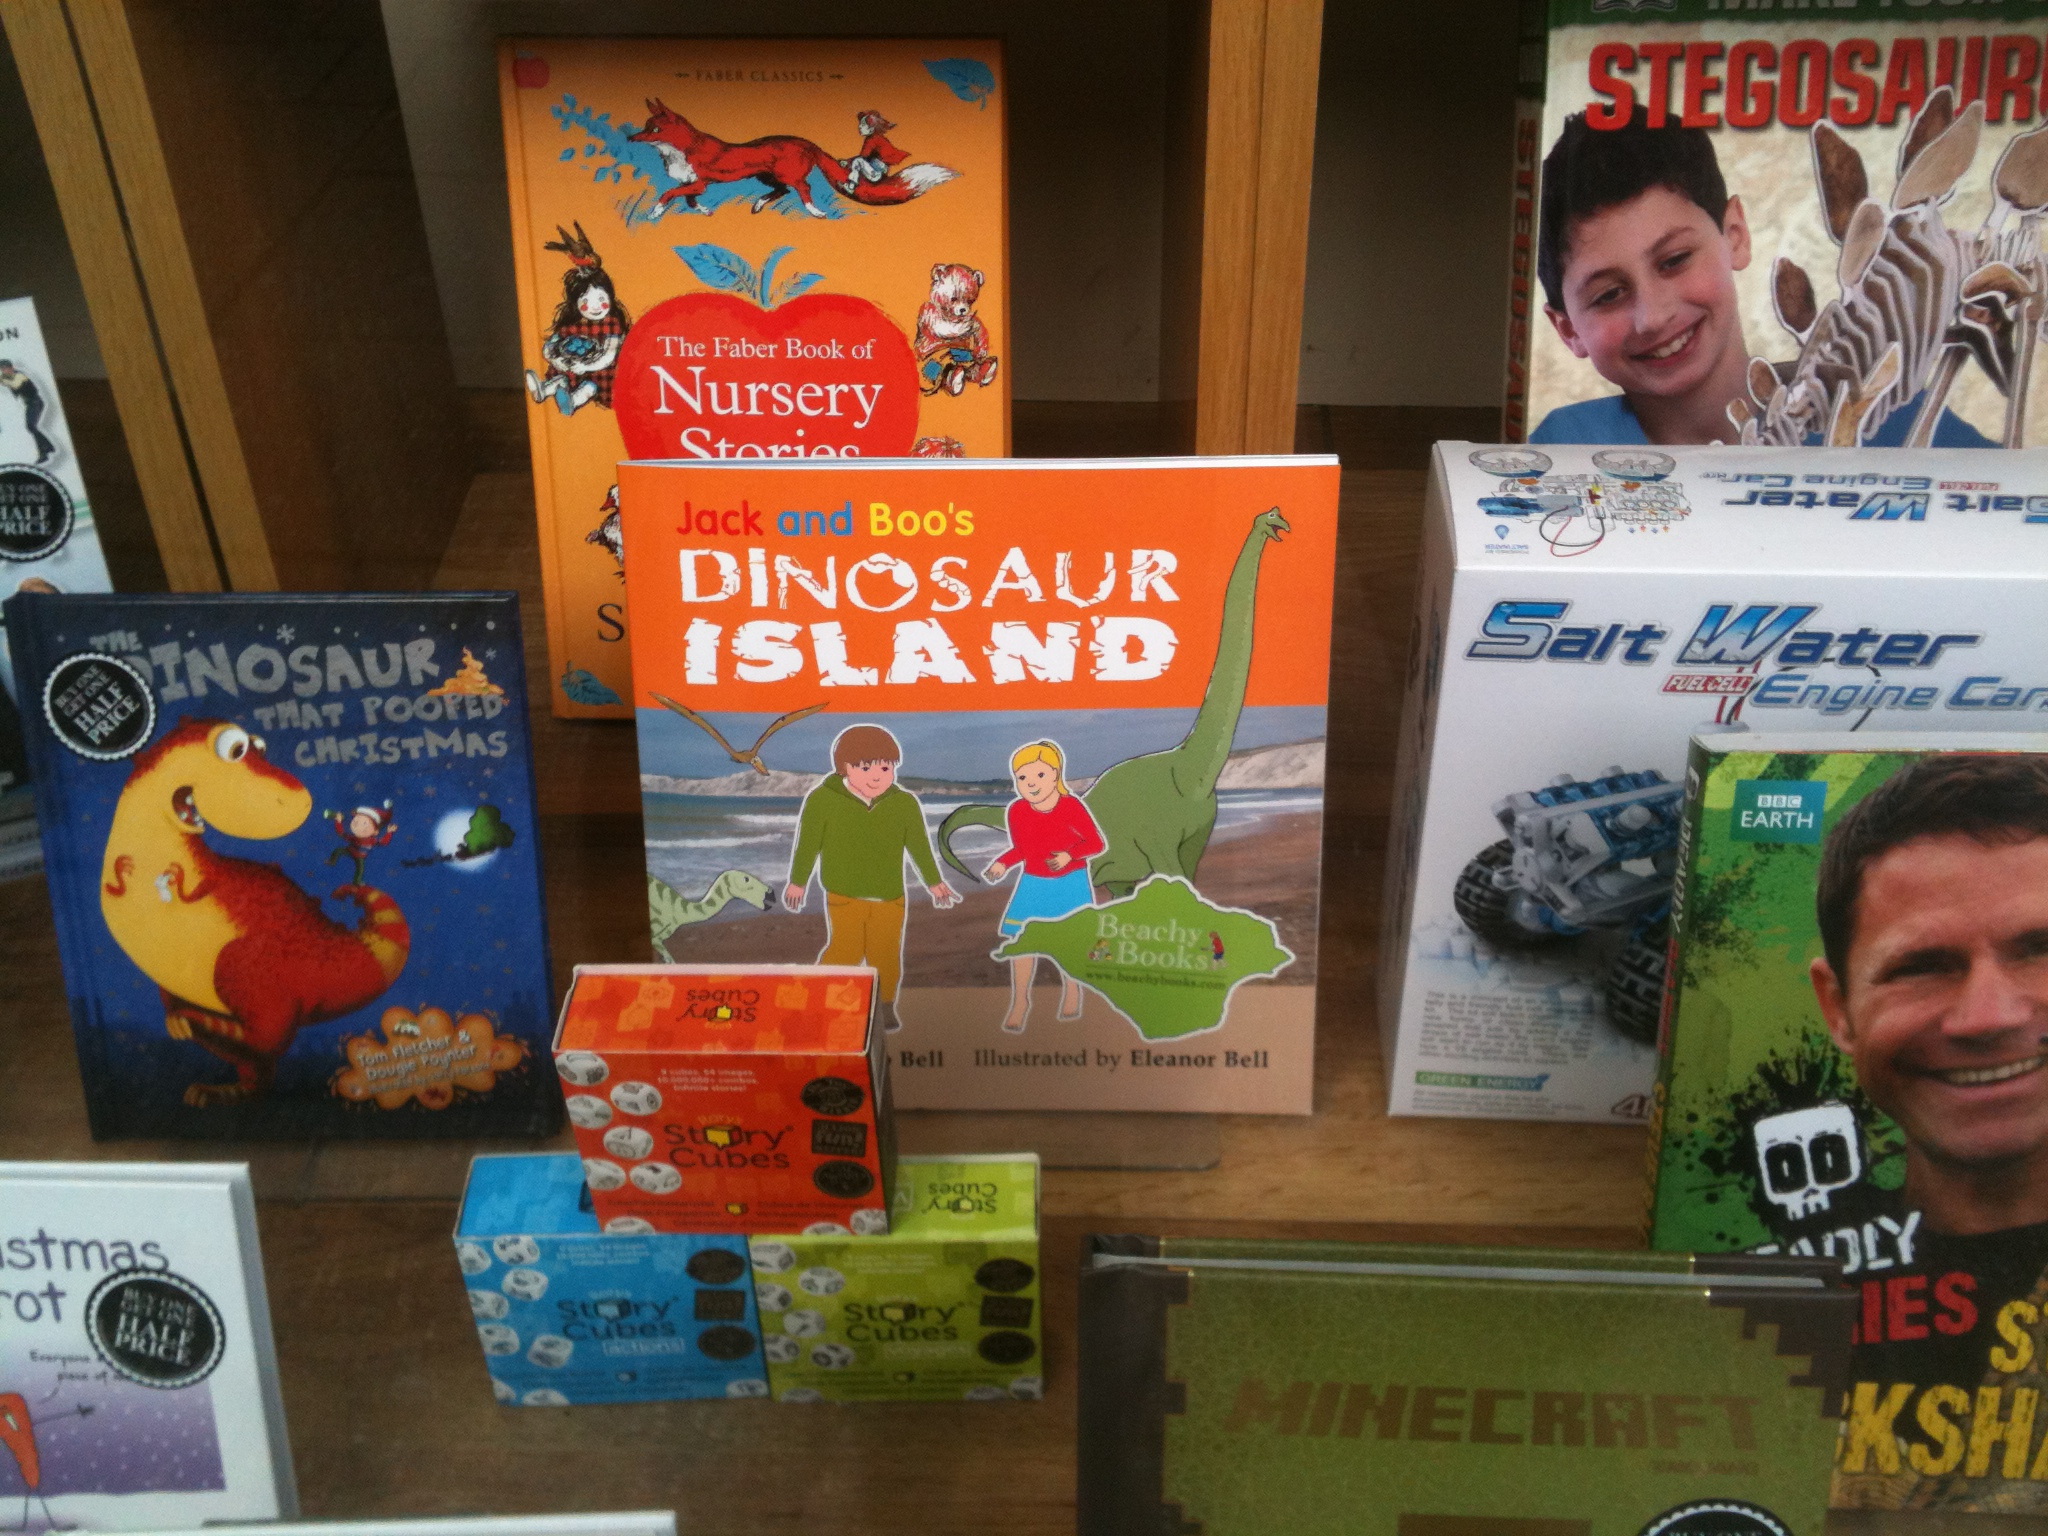 Jack and Boo's Dinosaur Island in Waterstones